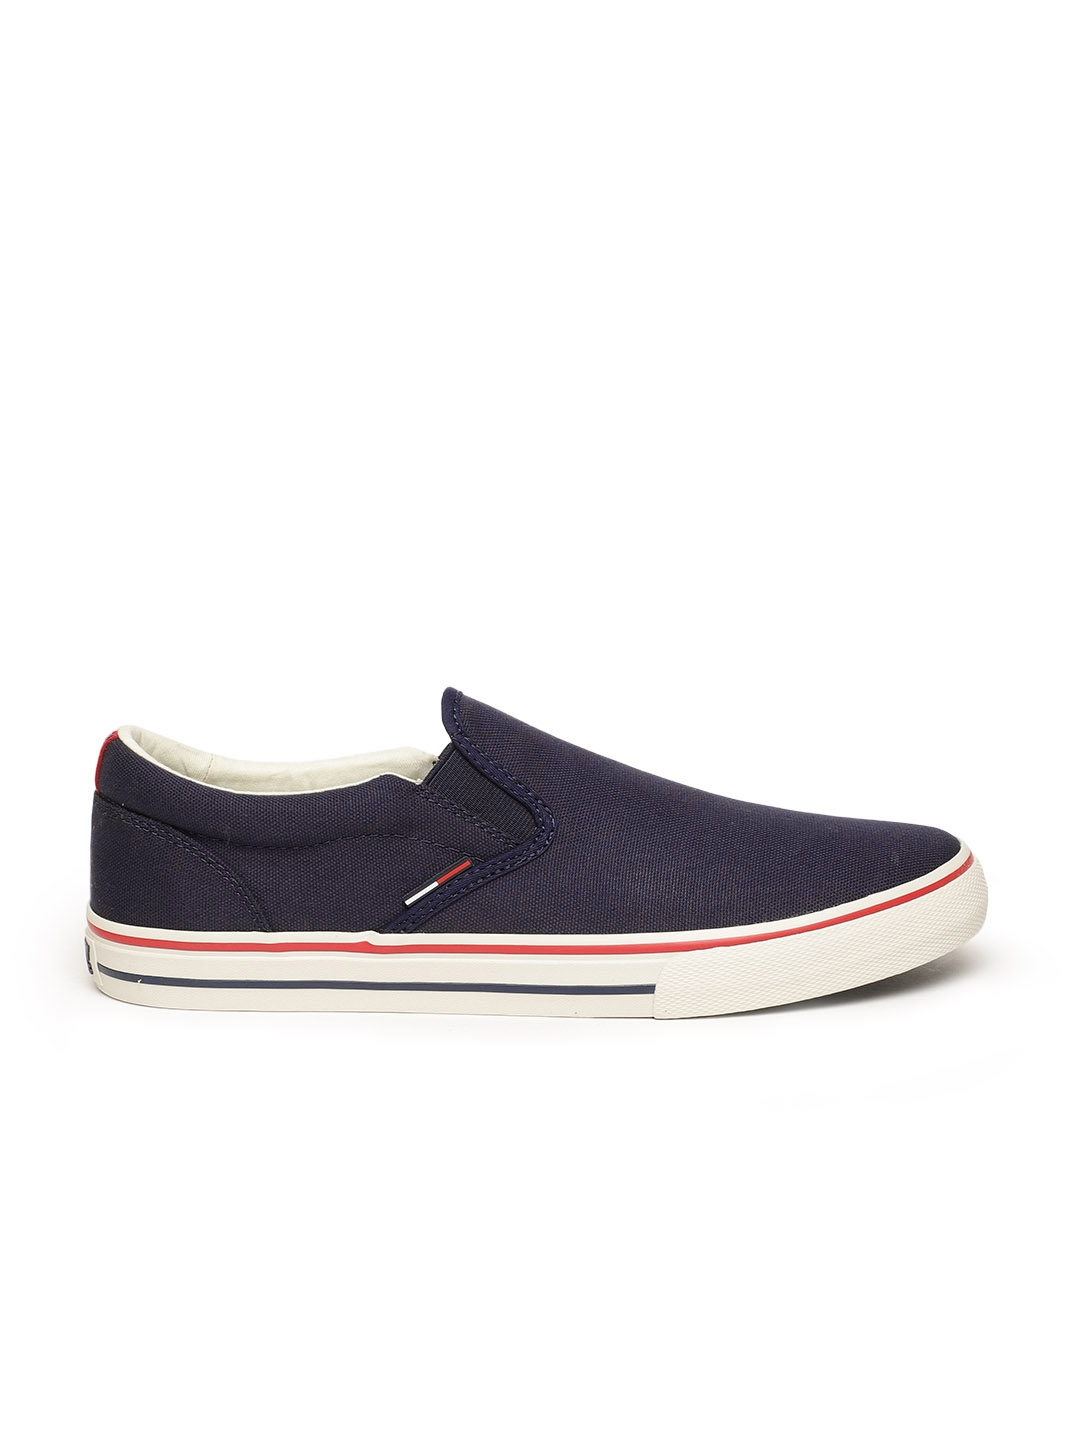 c226ece82 Buy Tommy Hilfiger Men Blue Sneakers - Casual Shoes for Men 5361713 ...